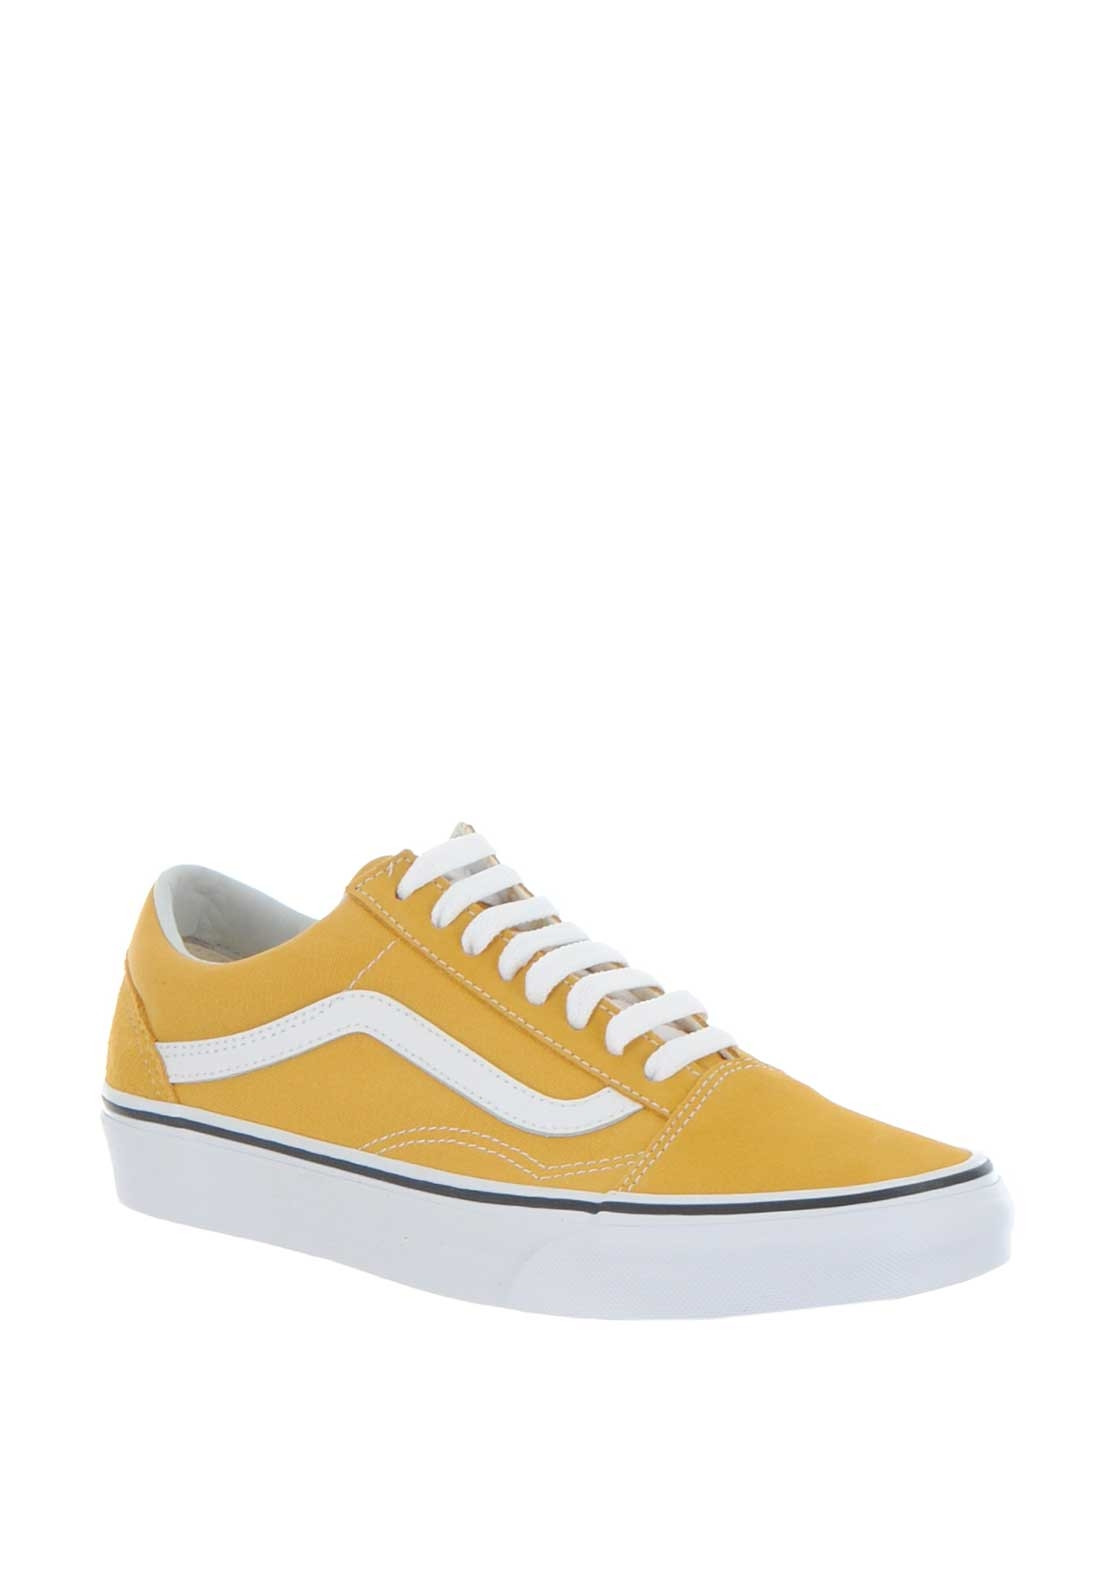 48101d20eaec Vans Womens Old Skool Canvas Trainers